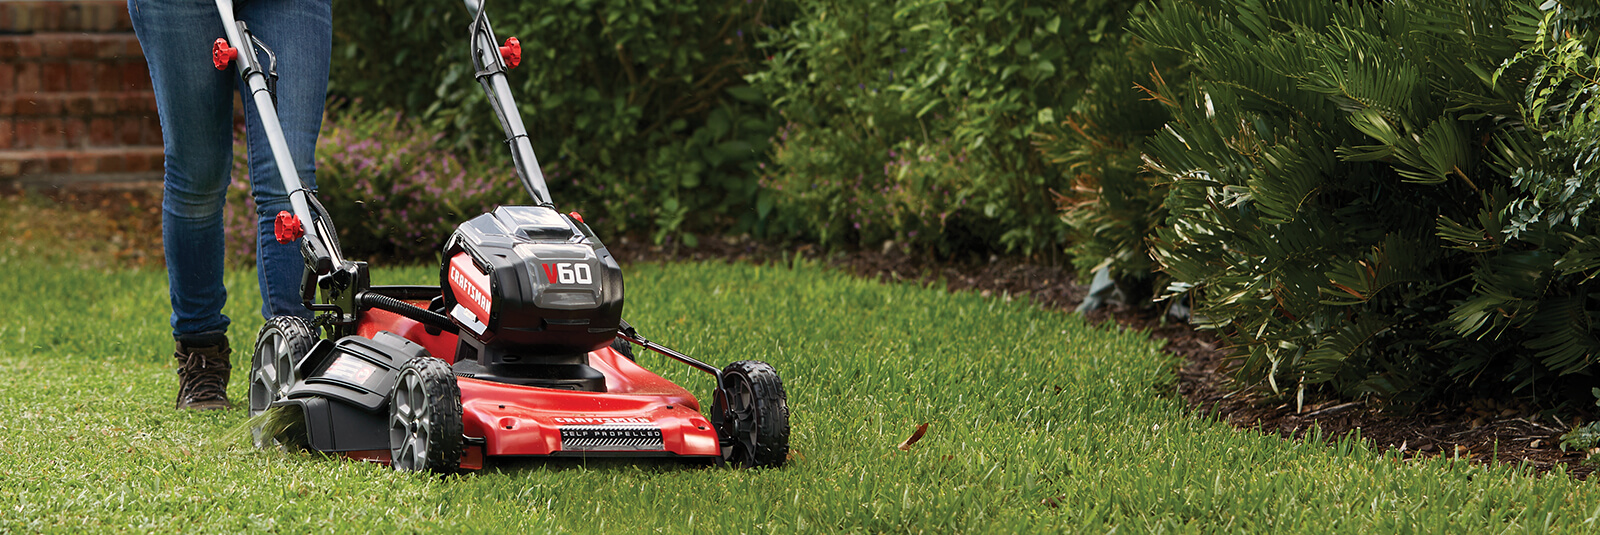 Lawn Mowers | Riding, Push, Self-Propelled Lawn Mowers